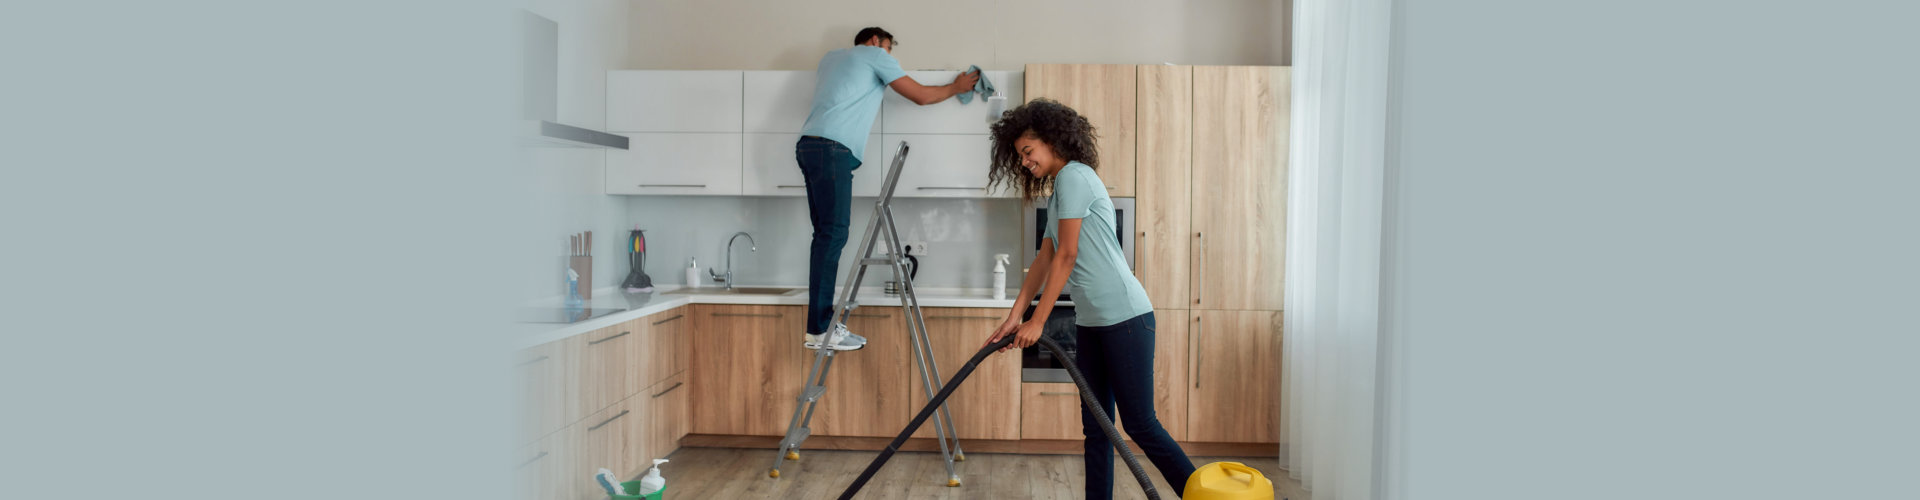 Cleaning experts. Two young professional cleaners in uniform working together in the kitchen. Young caucasian man.